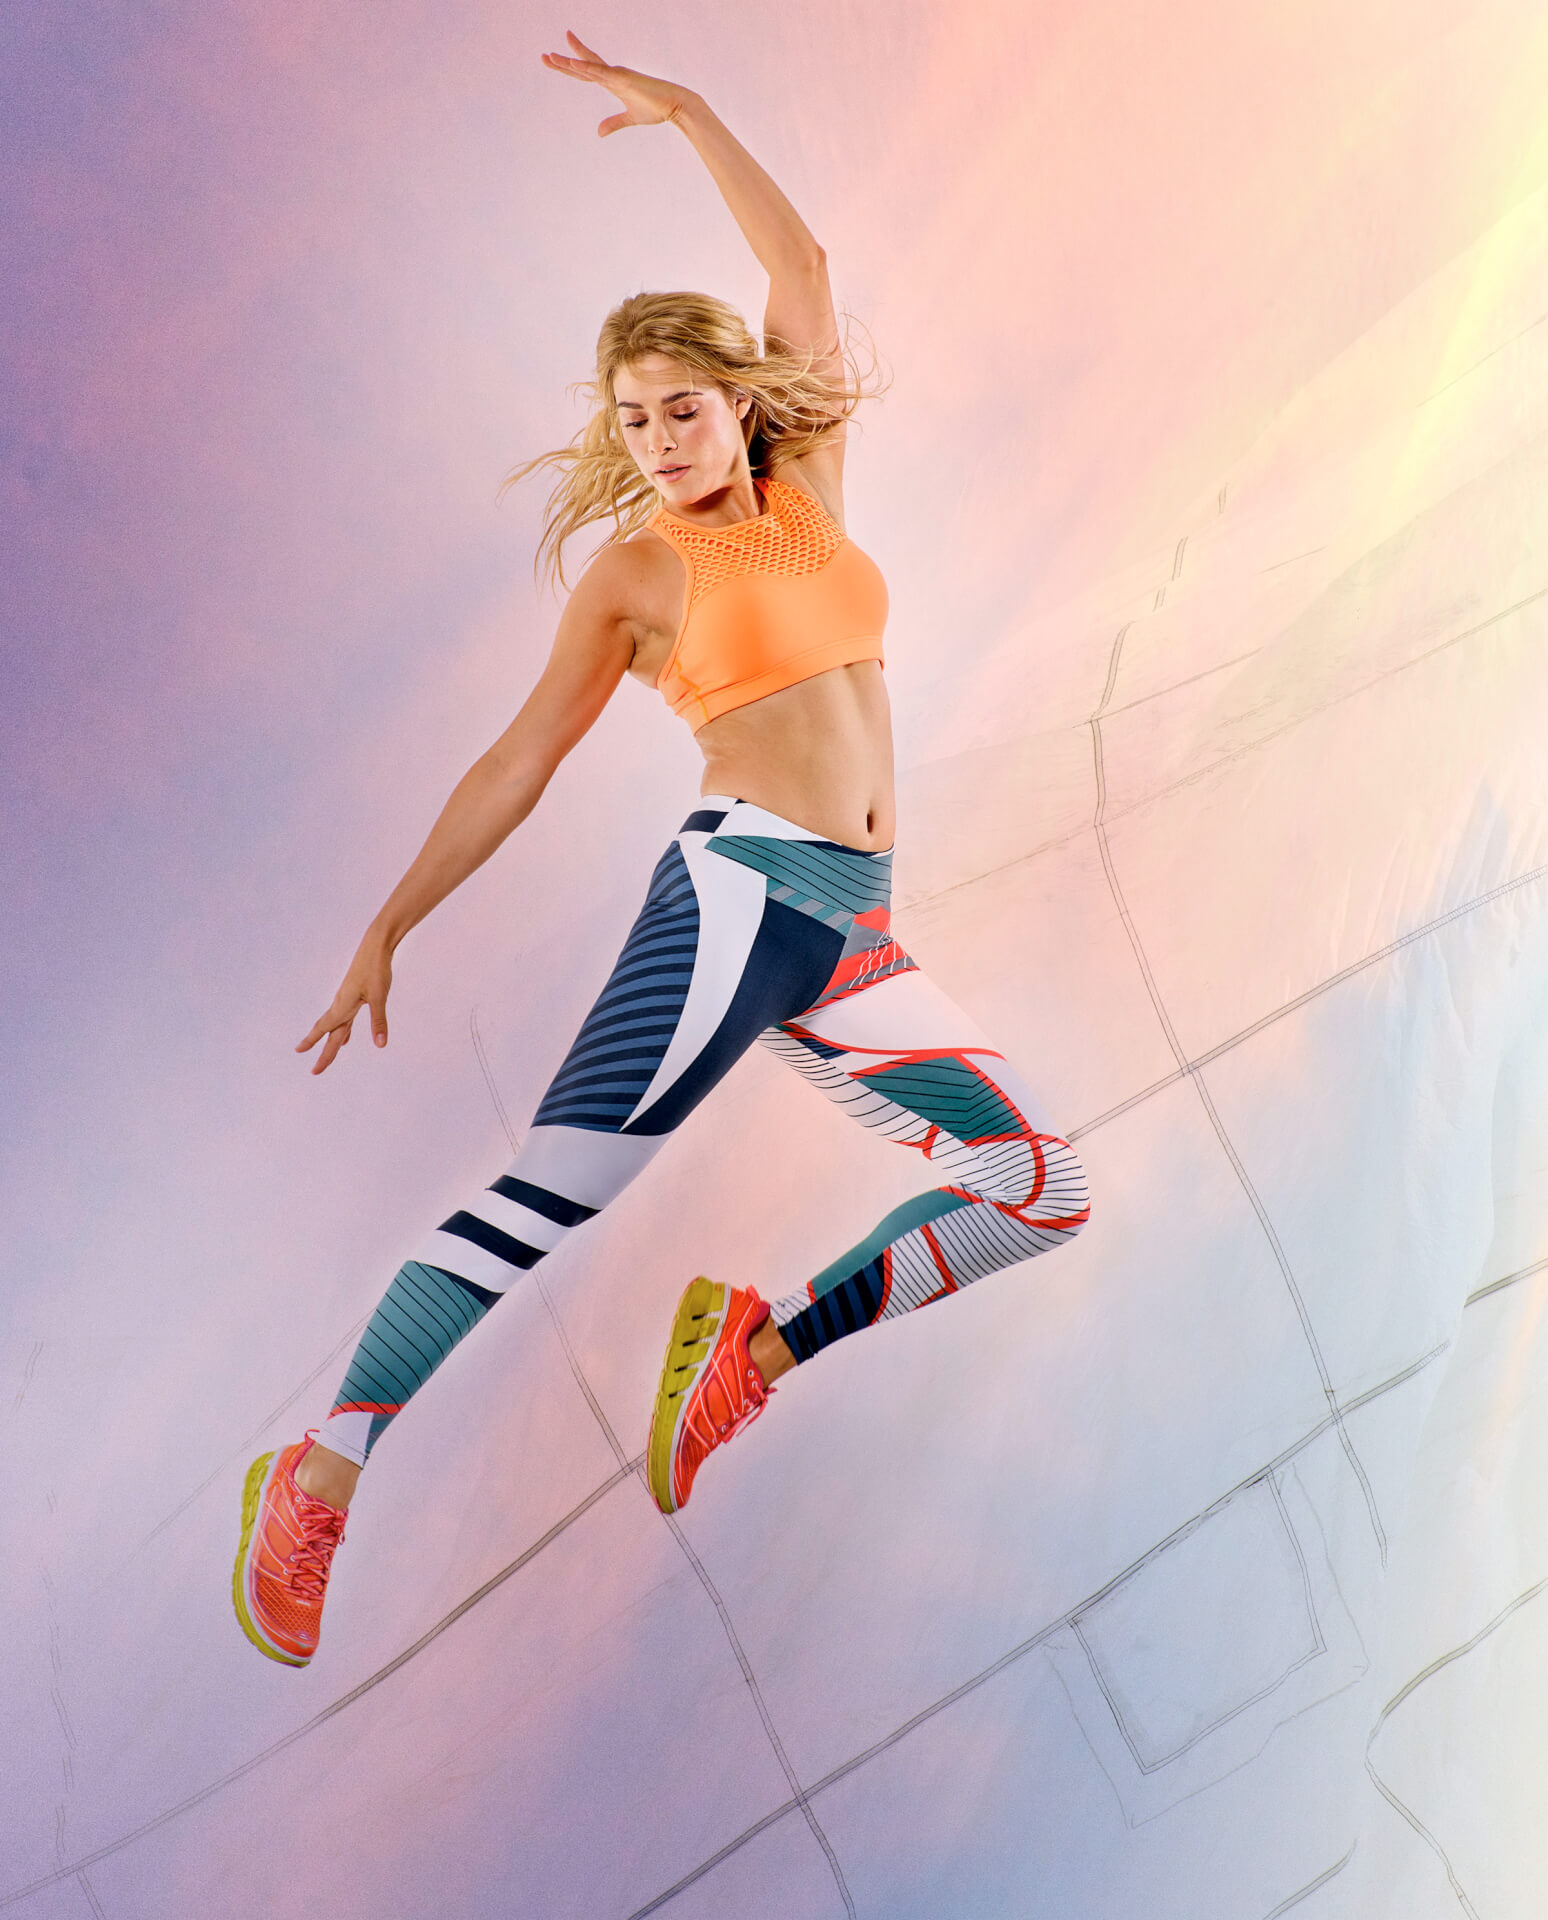 Orange cropped top by Lorna Jane. Leggings by Style Sportif. Trainers by Hoka One One.